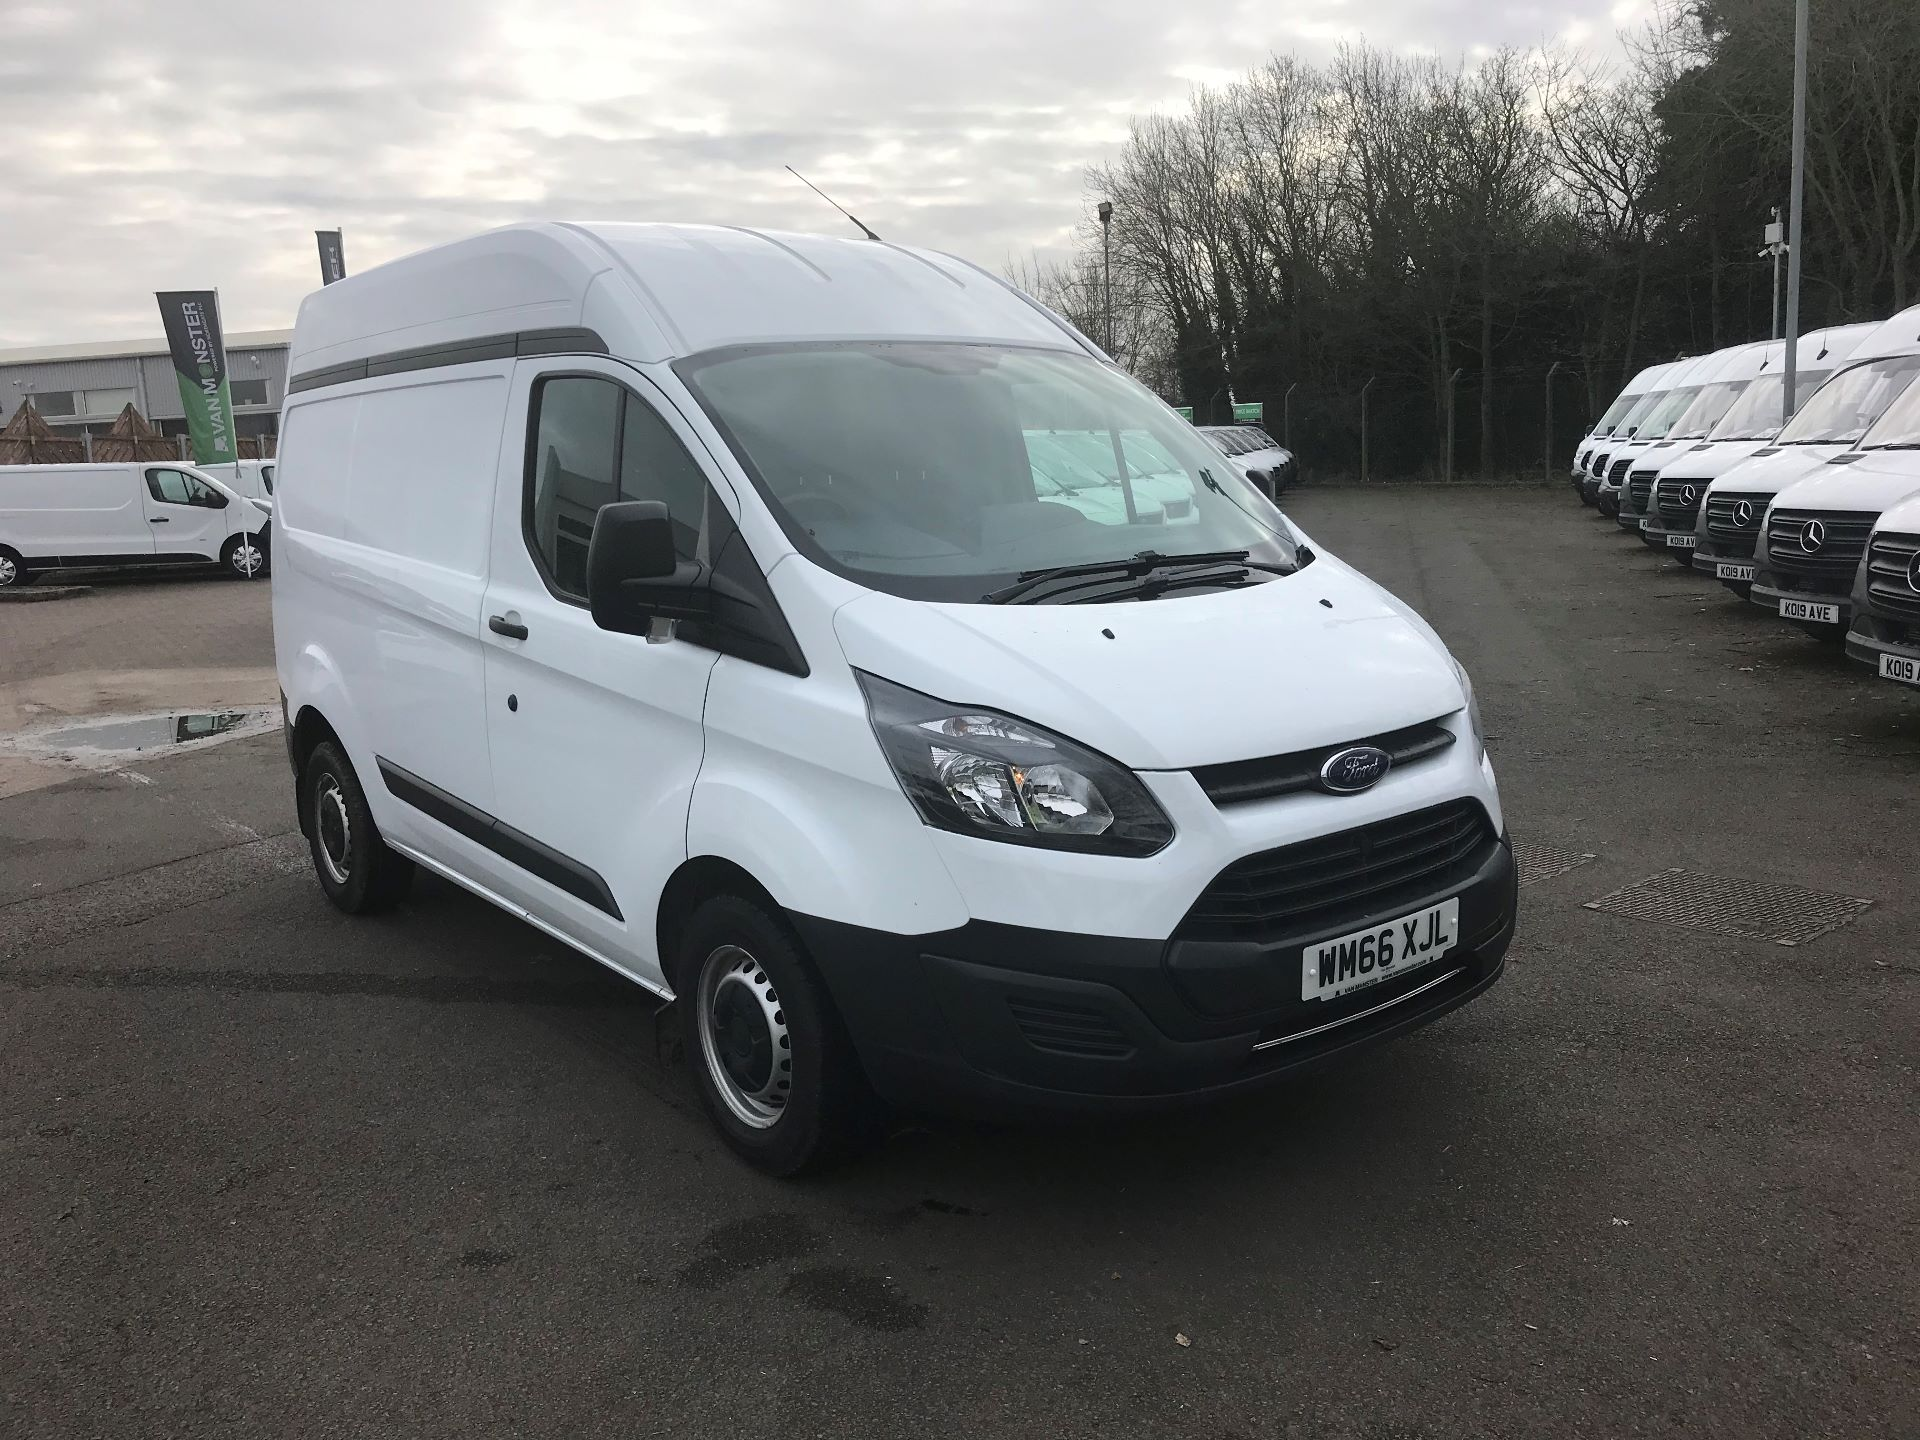 2016 Ford Transit Custom 2.0 TDCI 130PS HIGH ROOF VAN EURO 6 (WM66XJL) Image 1